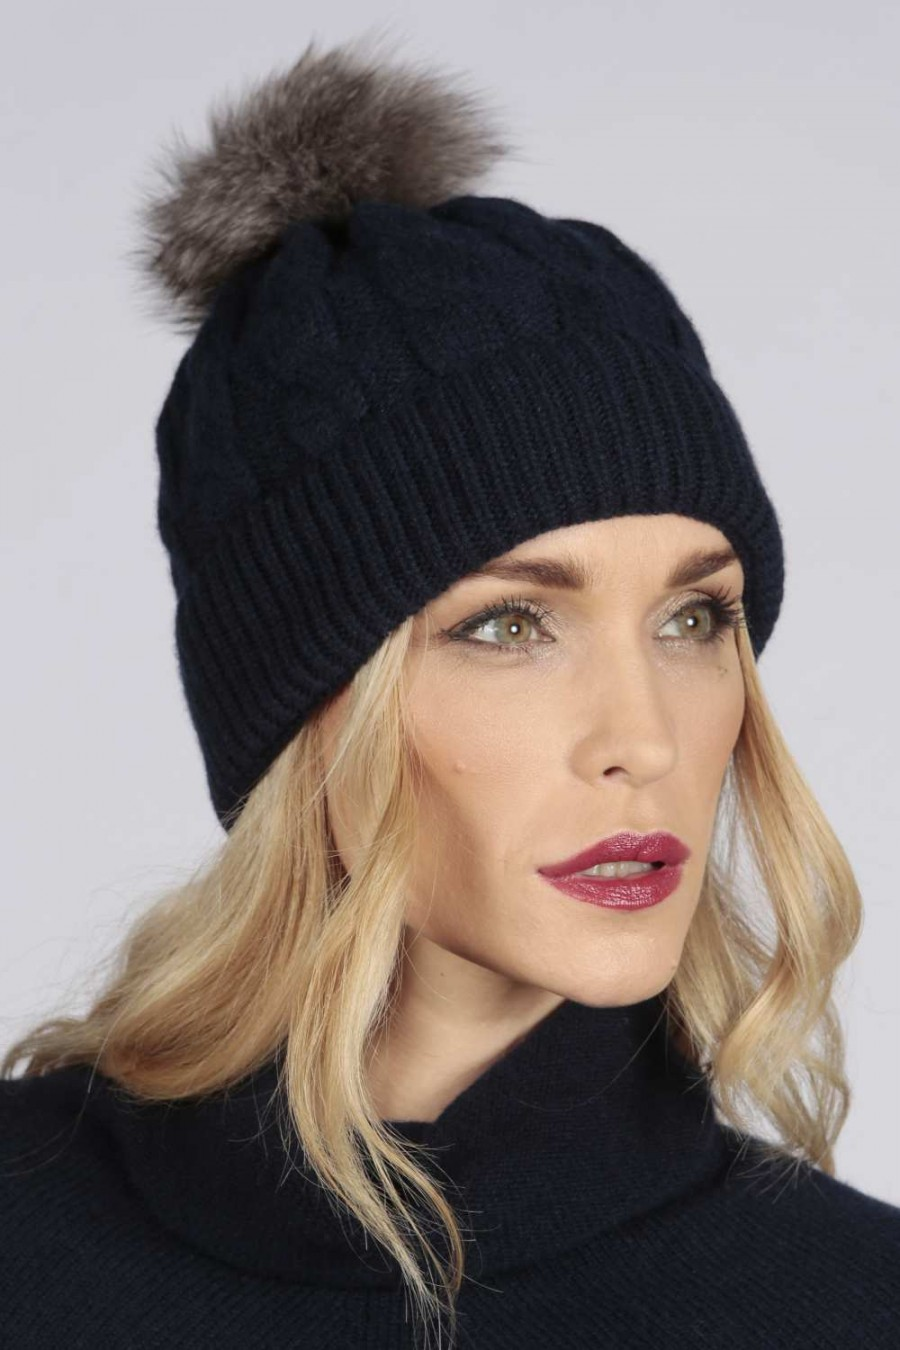 508c6d53aacd4 Navy Blue pure cashmere fur pom pom cable knit beanie hat